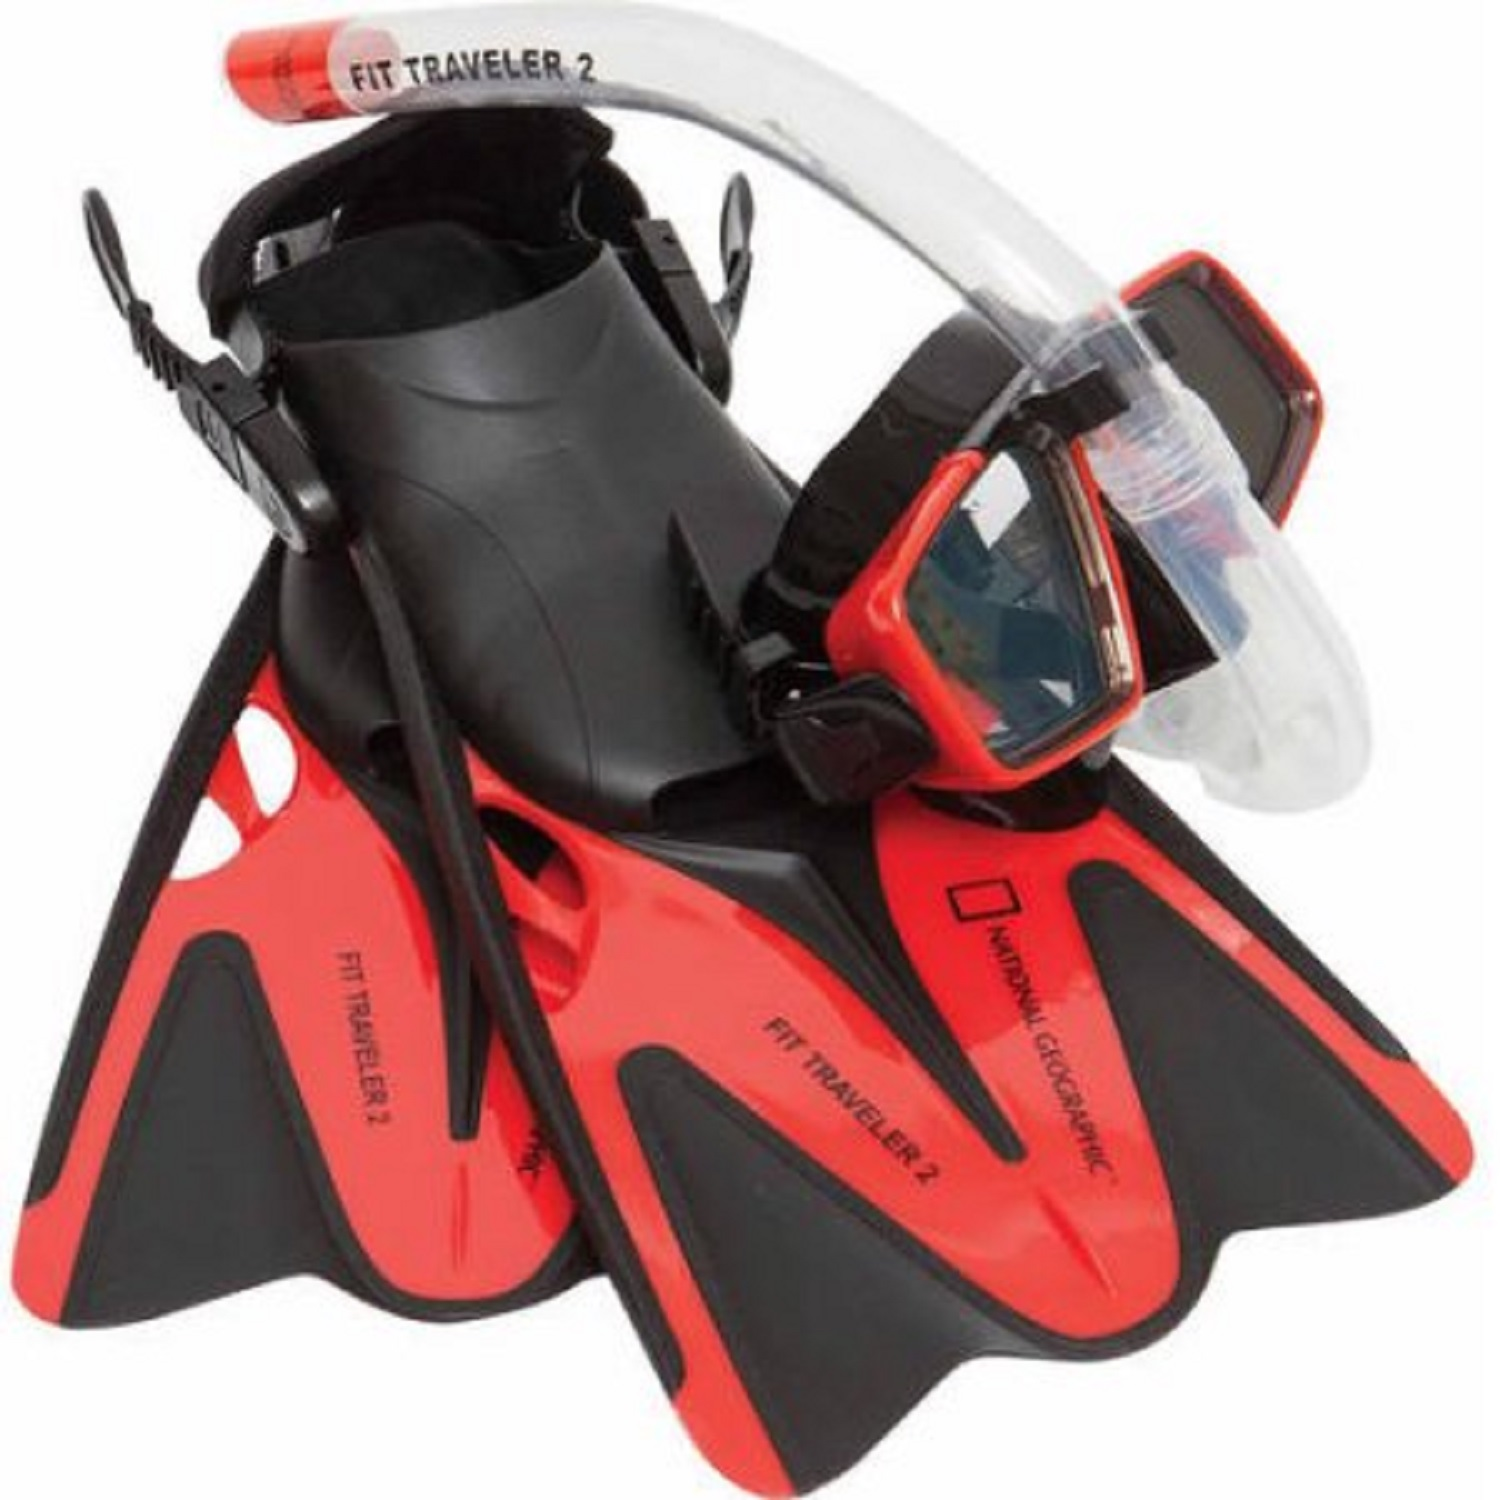 Natl Geographic Snorkeler Fit Traveler2 Combo Red Blk ML/XL